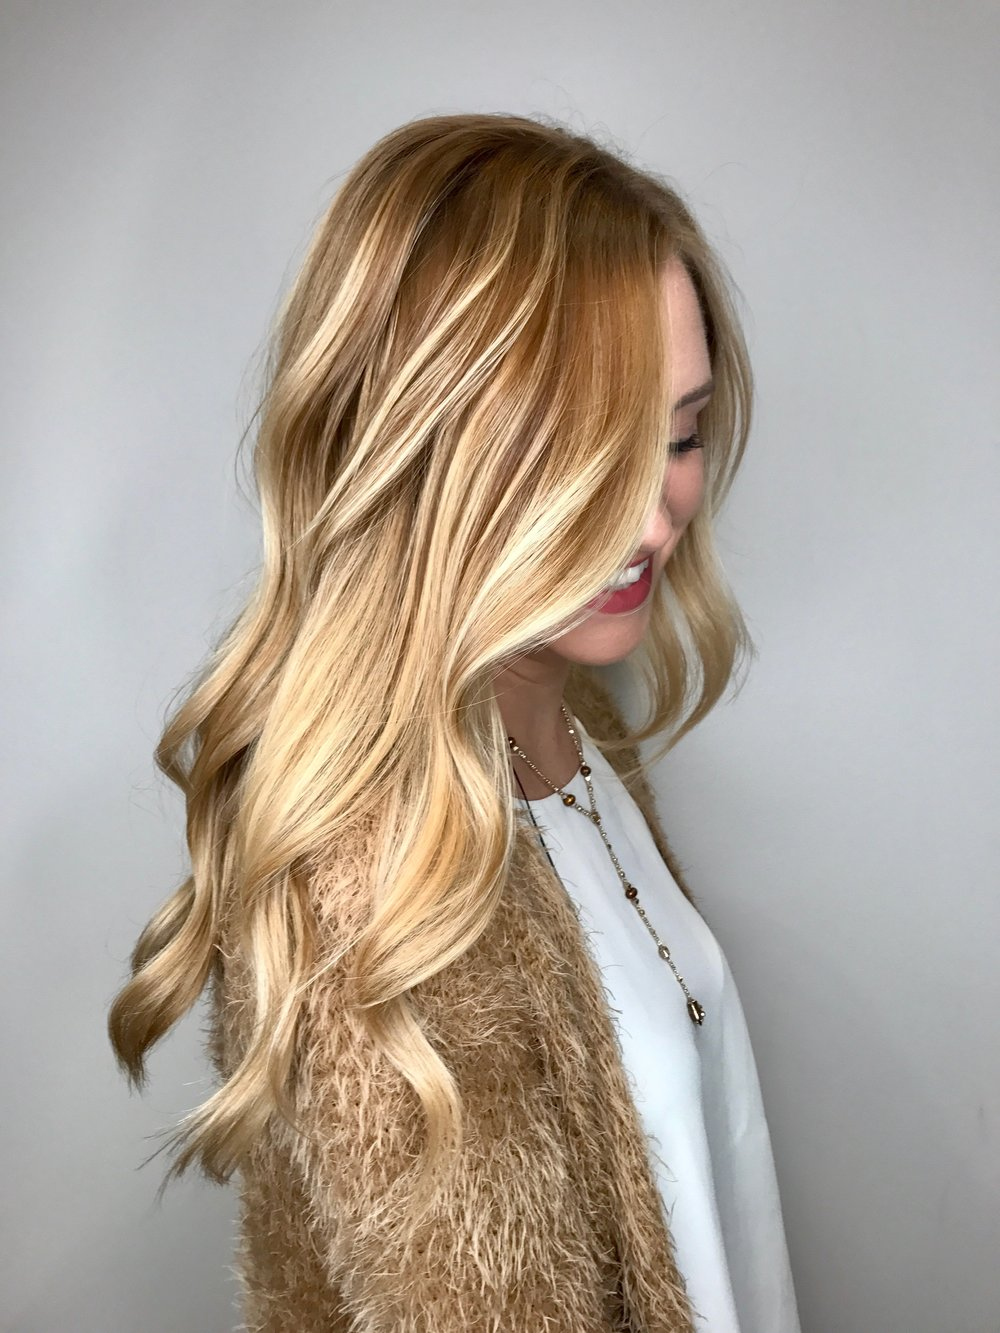 dimensional blonde hair dallas hair salon.JPG